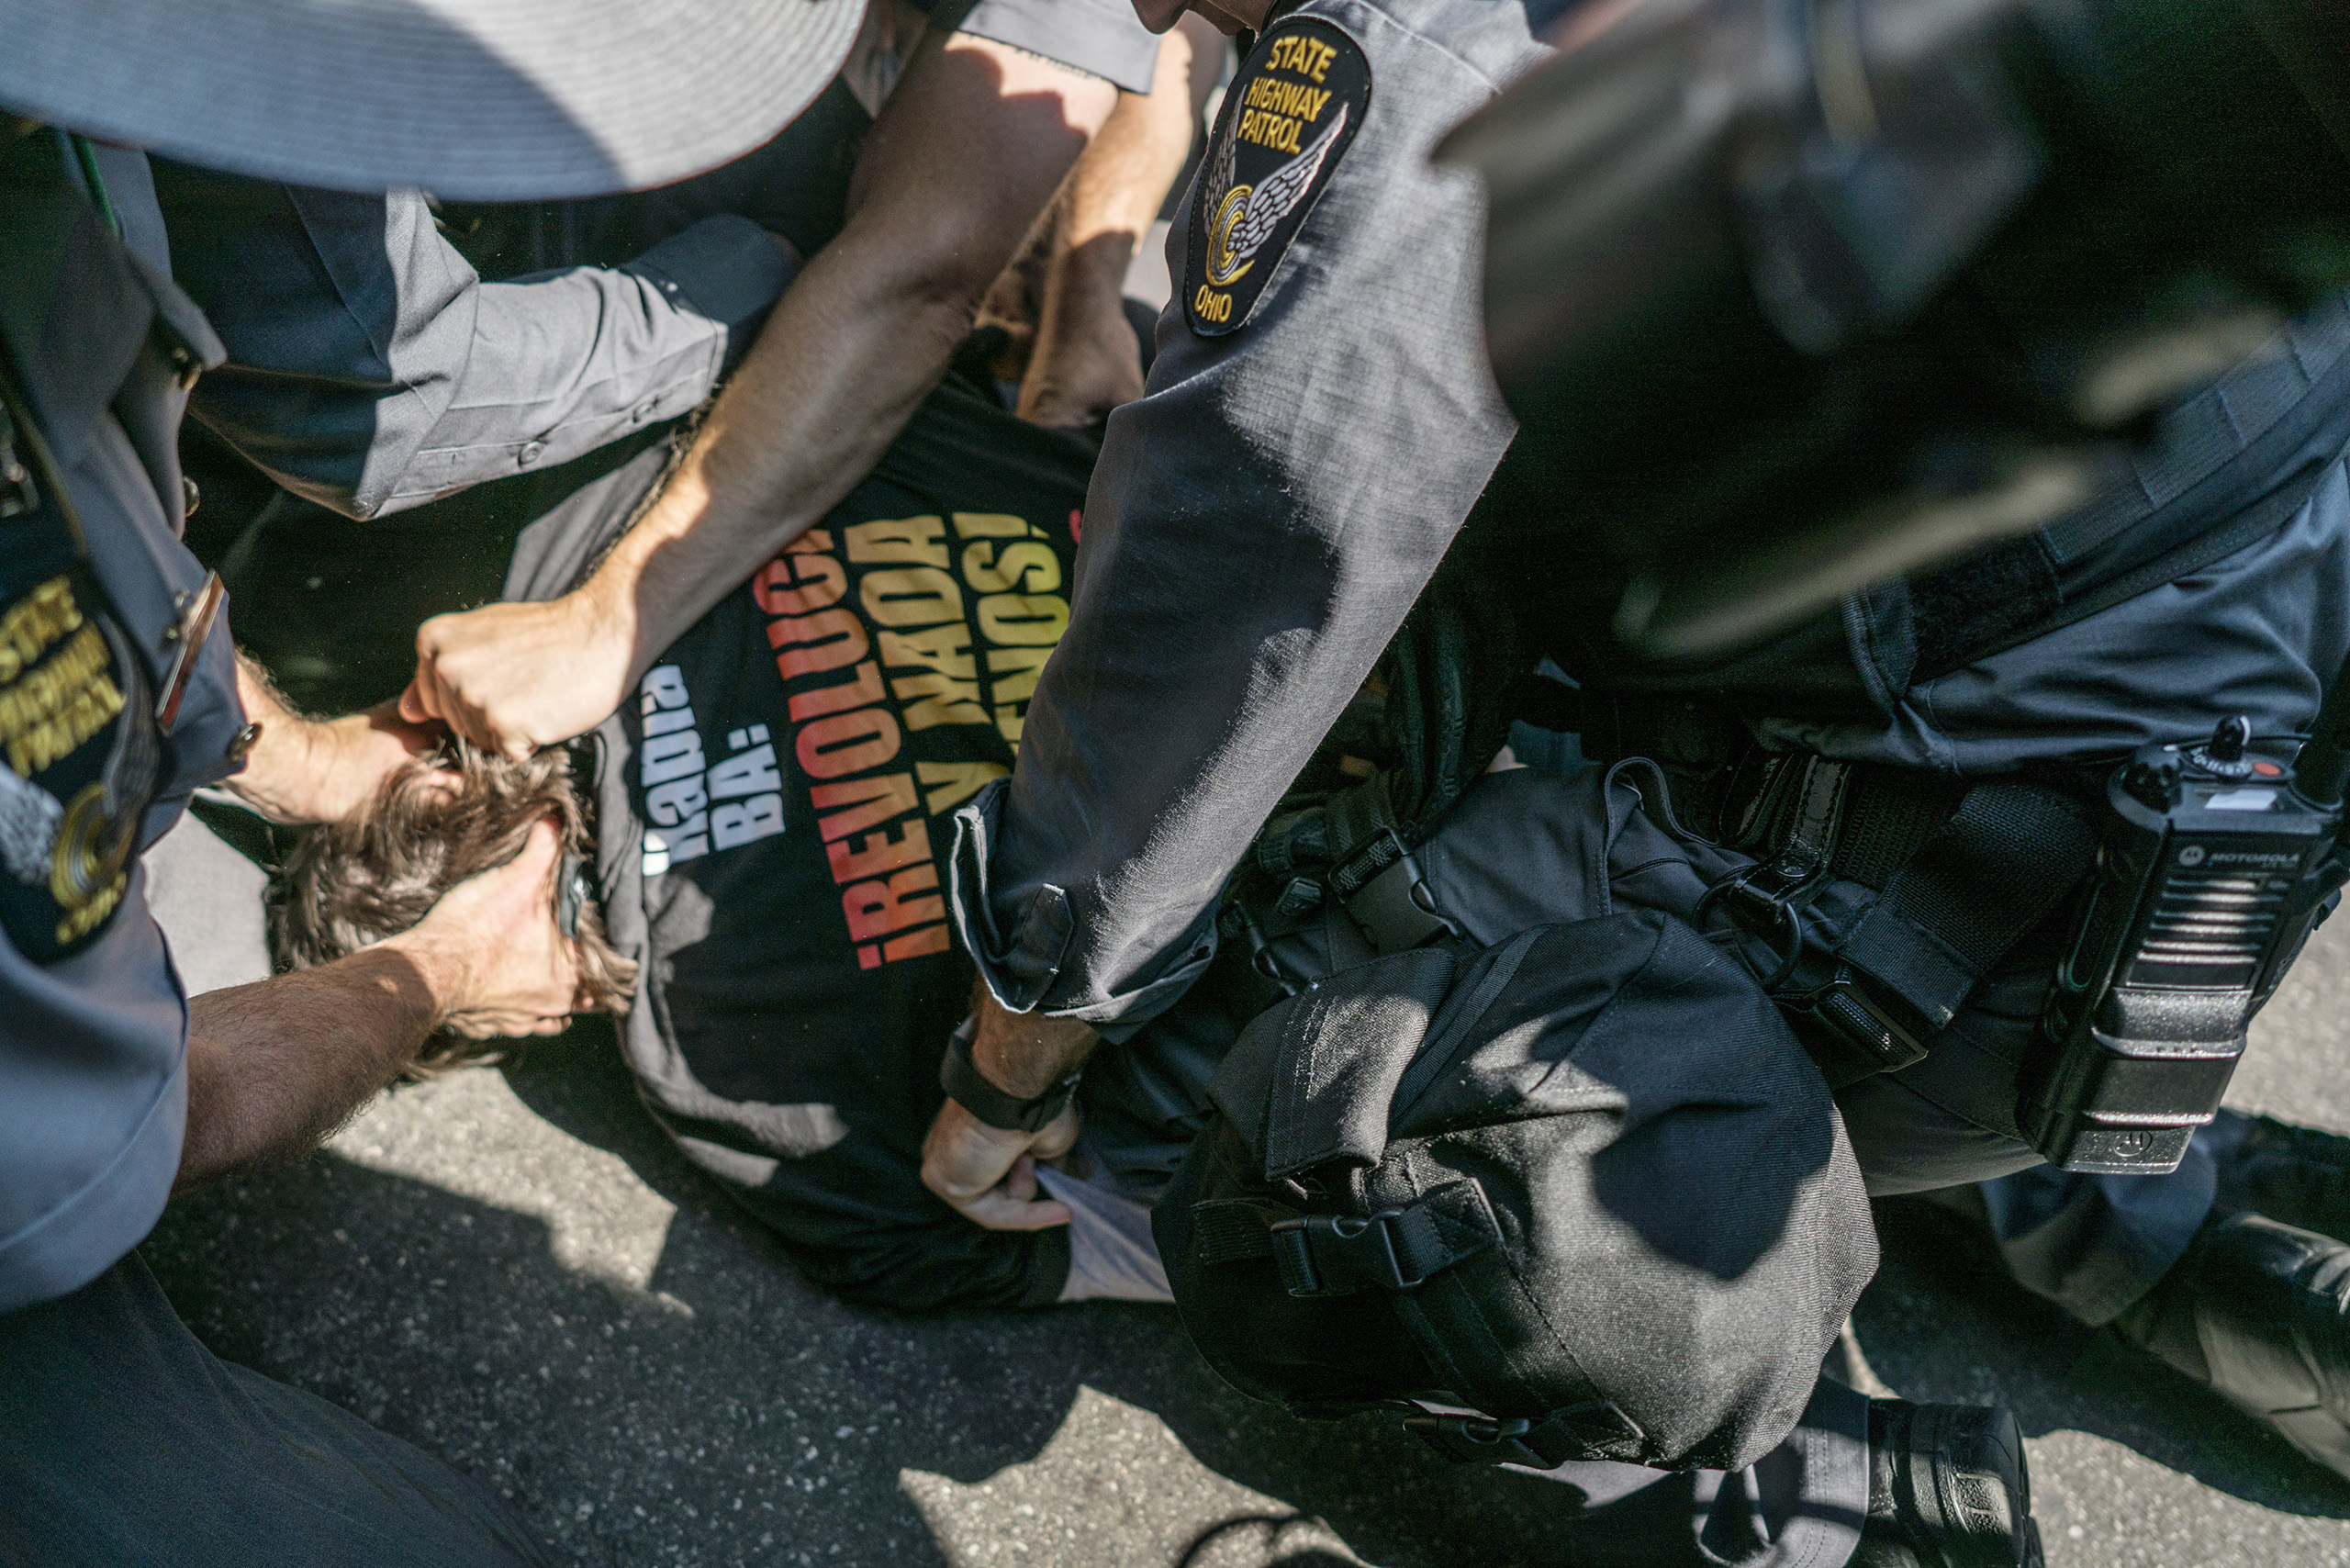 A protestor is restrained by police after a group tried to burn an American Flag near the sight of the Republican National Convention in downtown Cleveland July 20, 2016 in Cleveland, Ohio.